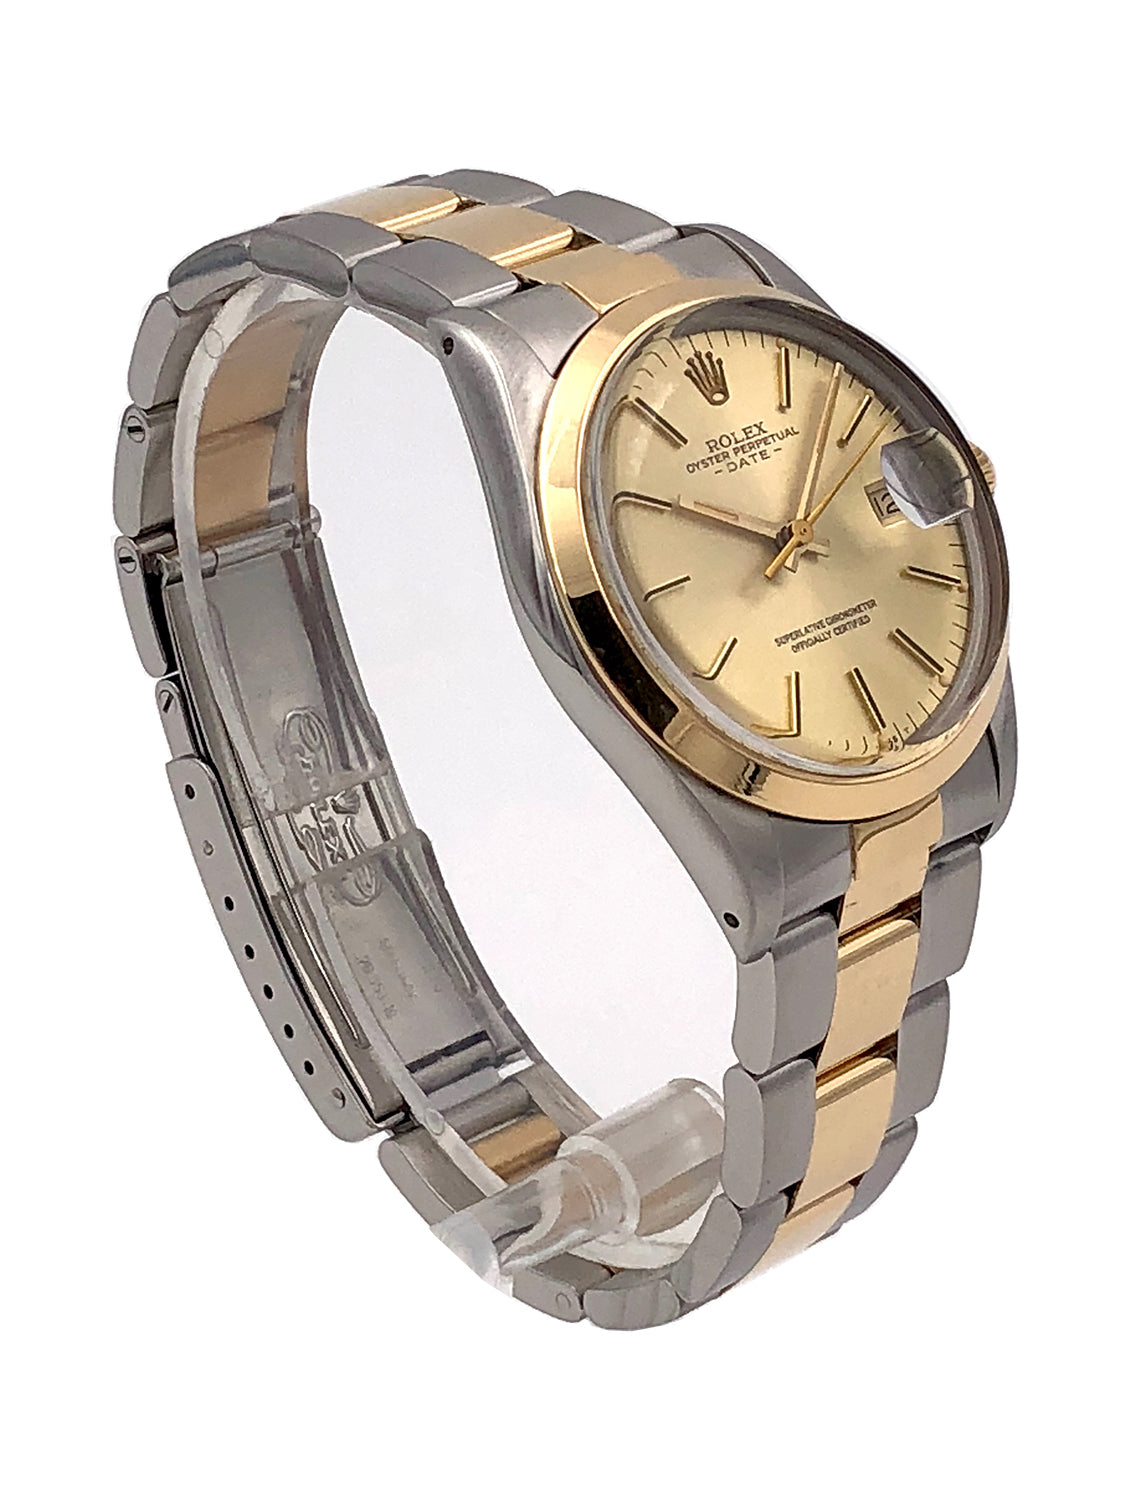 Rolex Oyster Perpetual Date Twotone 18kt Yellow Gold/Stainless Steel – 1500